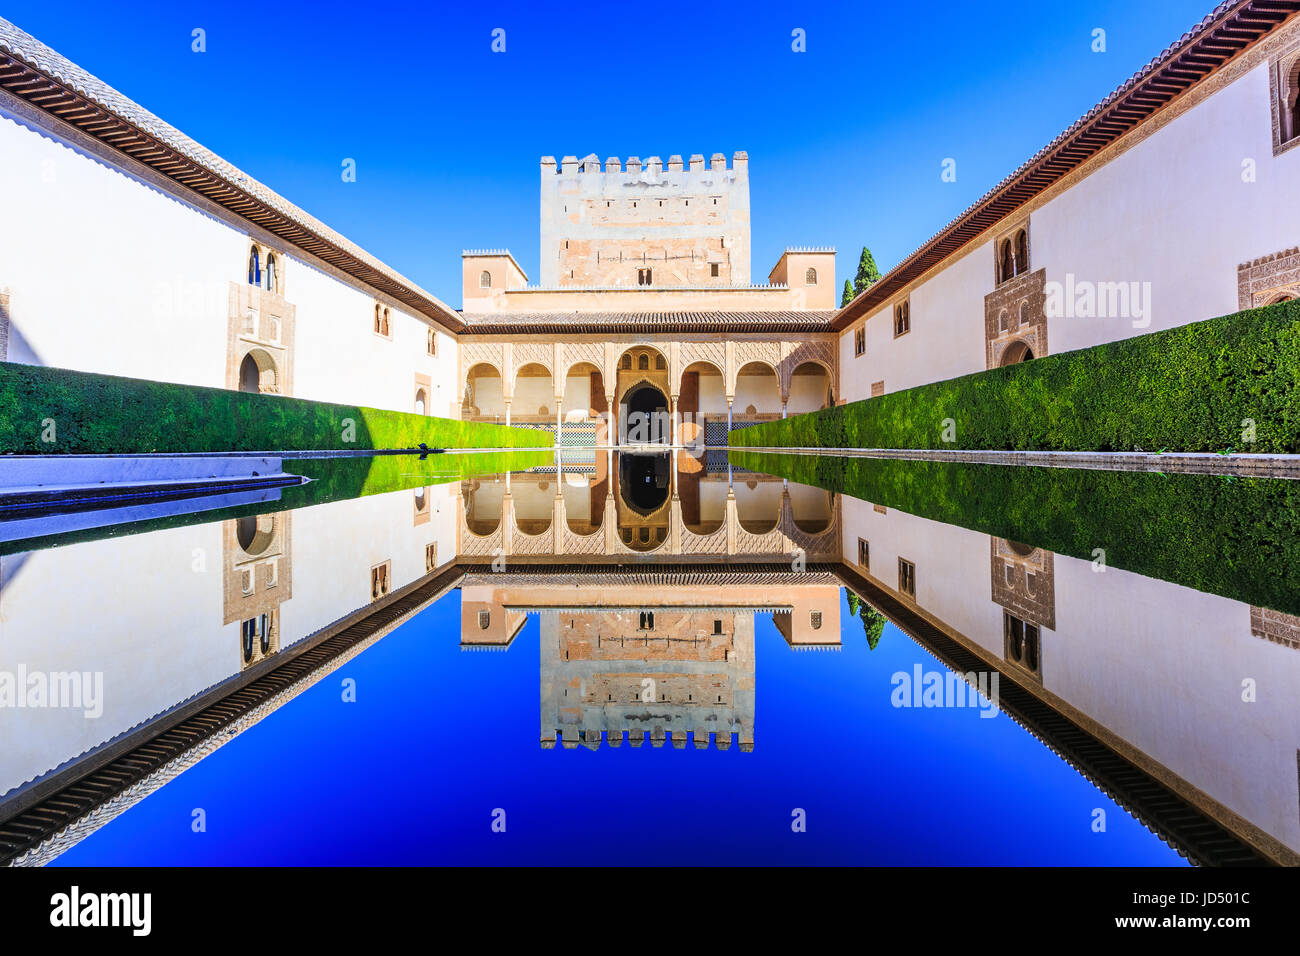 Alhambra of Granada, Spain. The Nasrid Palaces (Palacios Nazaraies) in the Alhambra fortress. - Stock Image